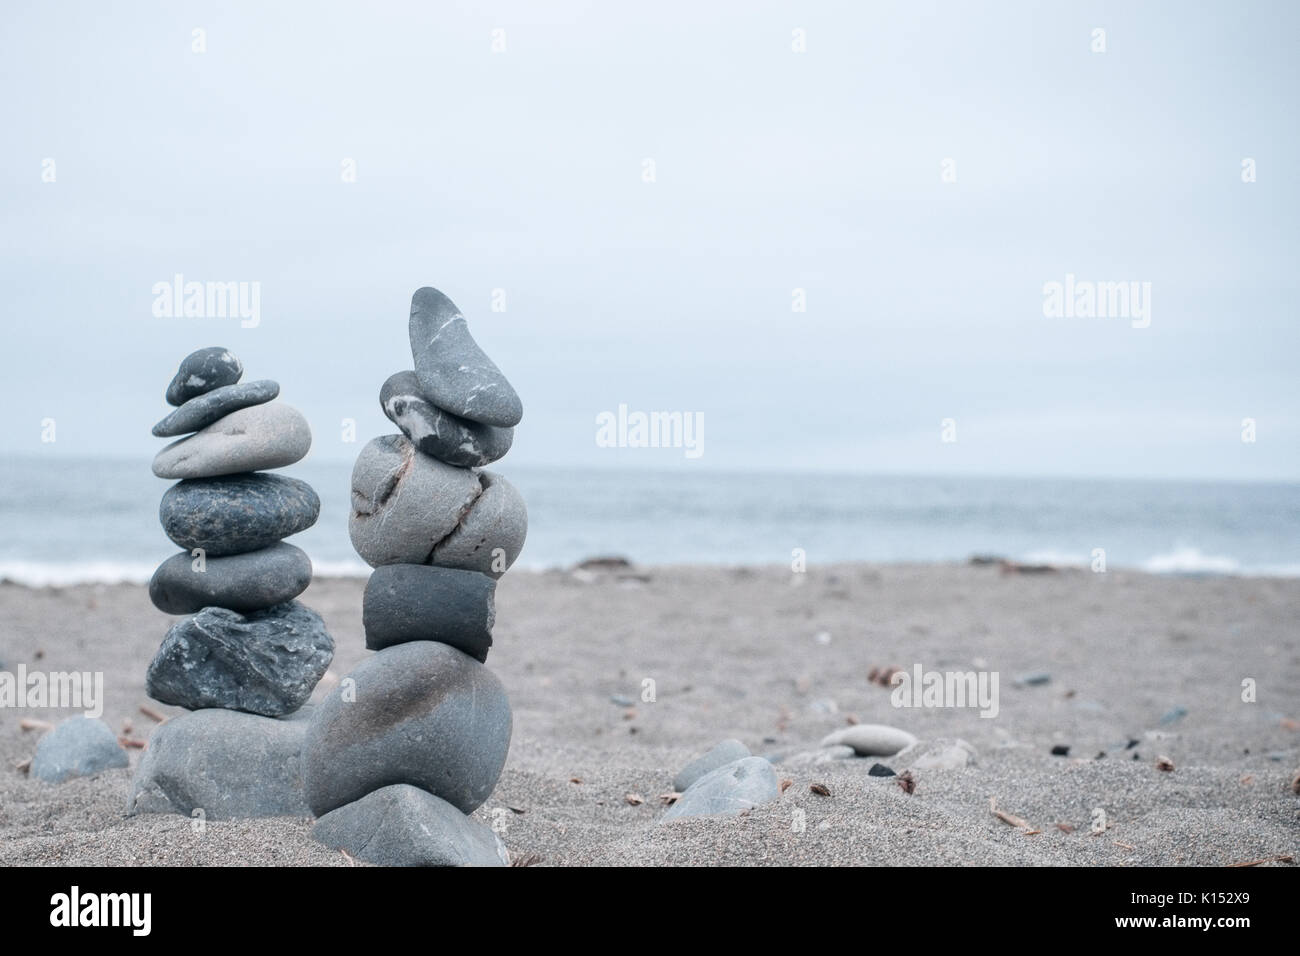 Monochrome, Serene, Blue Stacked rocks on a California beach symbolizing Peace, Balance, Meditation, and Mindfulness Stock Photo